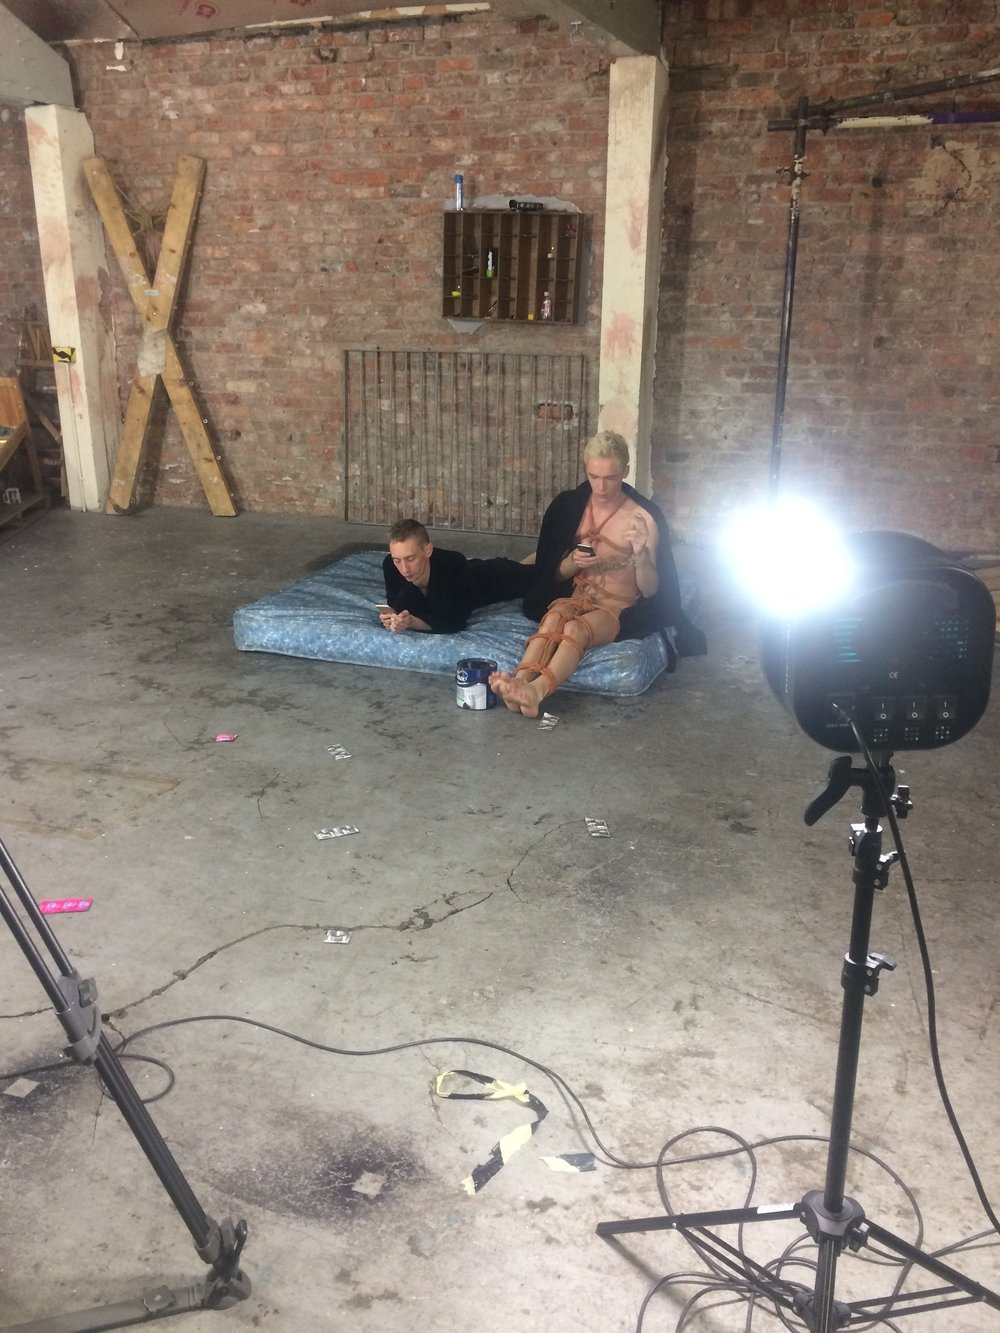 The Day I Spent in a Gay Porn Studio - So yeah, that happened.